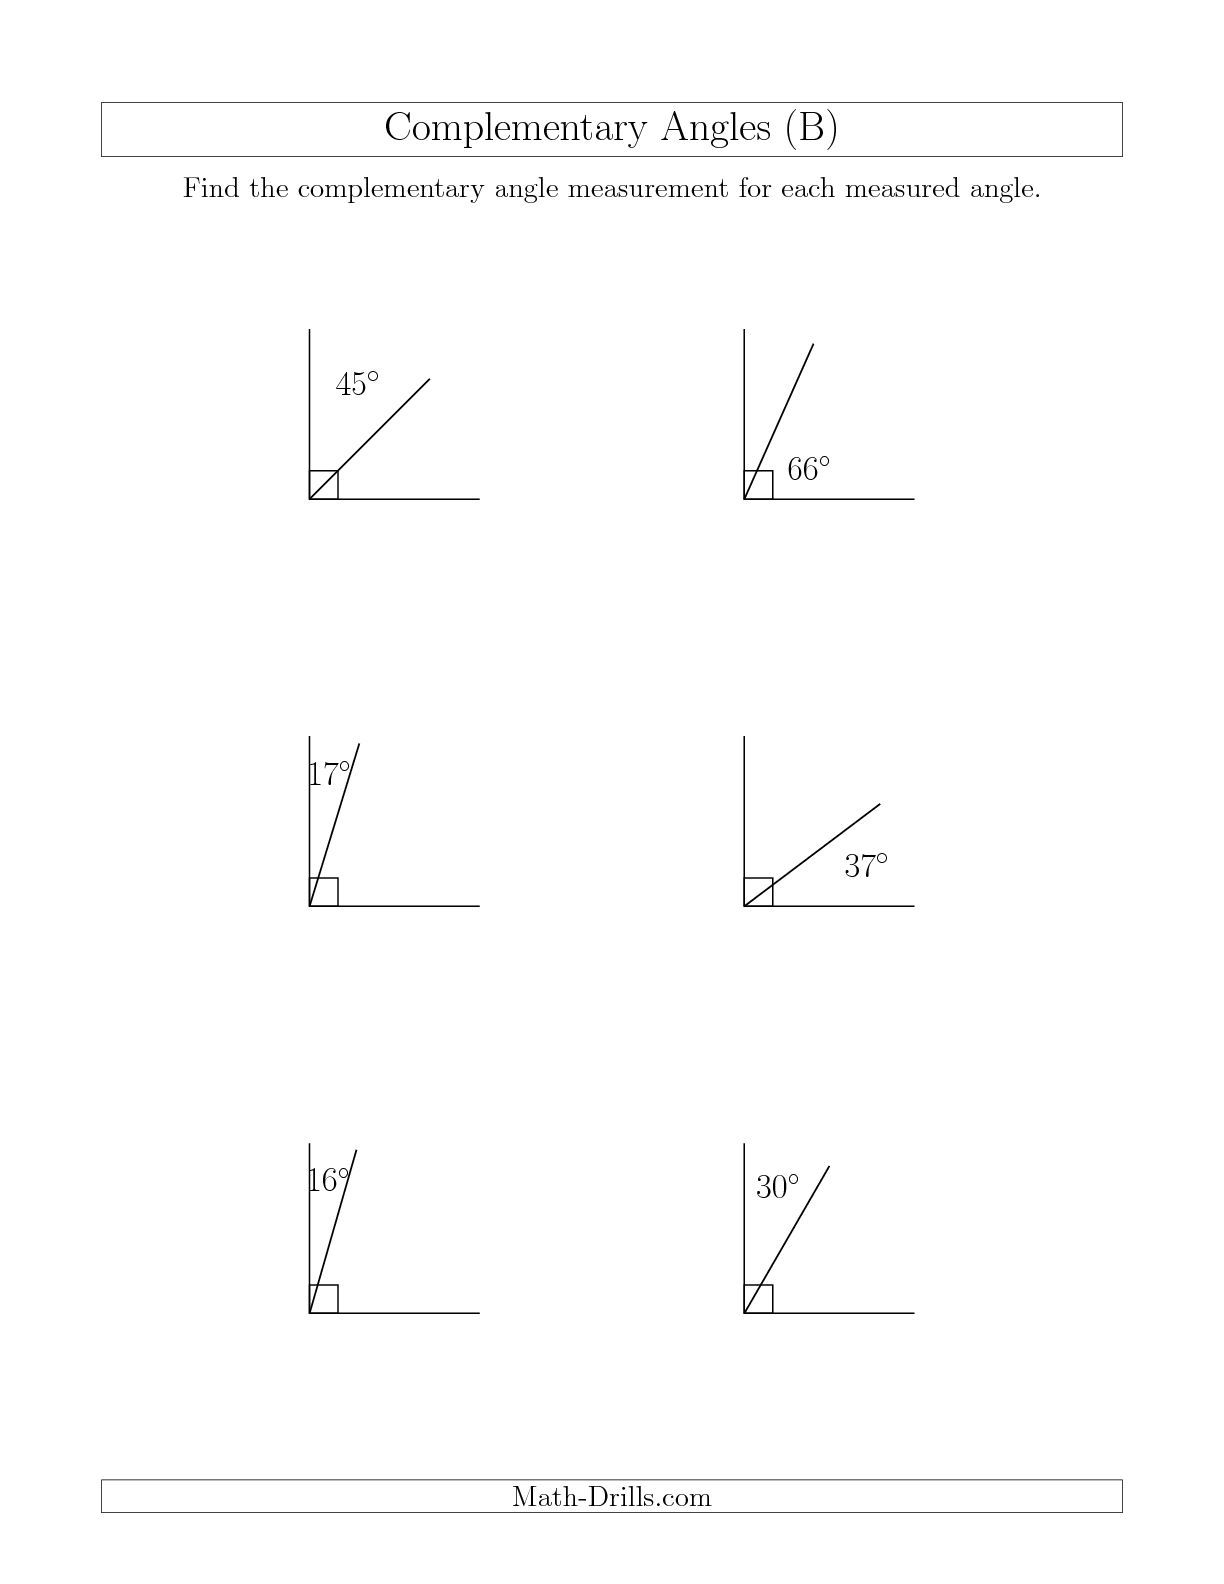 Adjacent Angles Worksheet   Printable Worksheets and Activities for  Teachers [ 1584 x 1224 Pixel ]